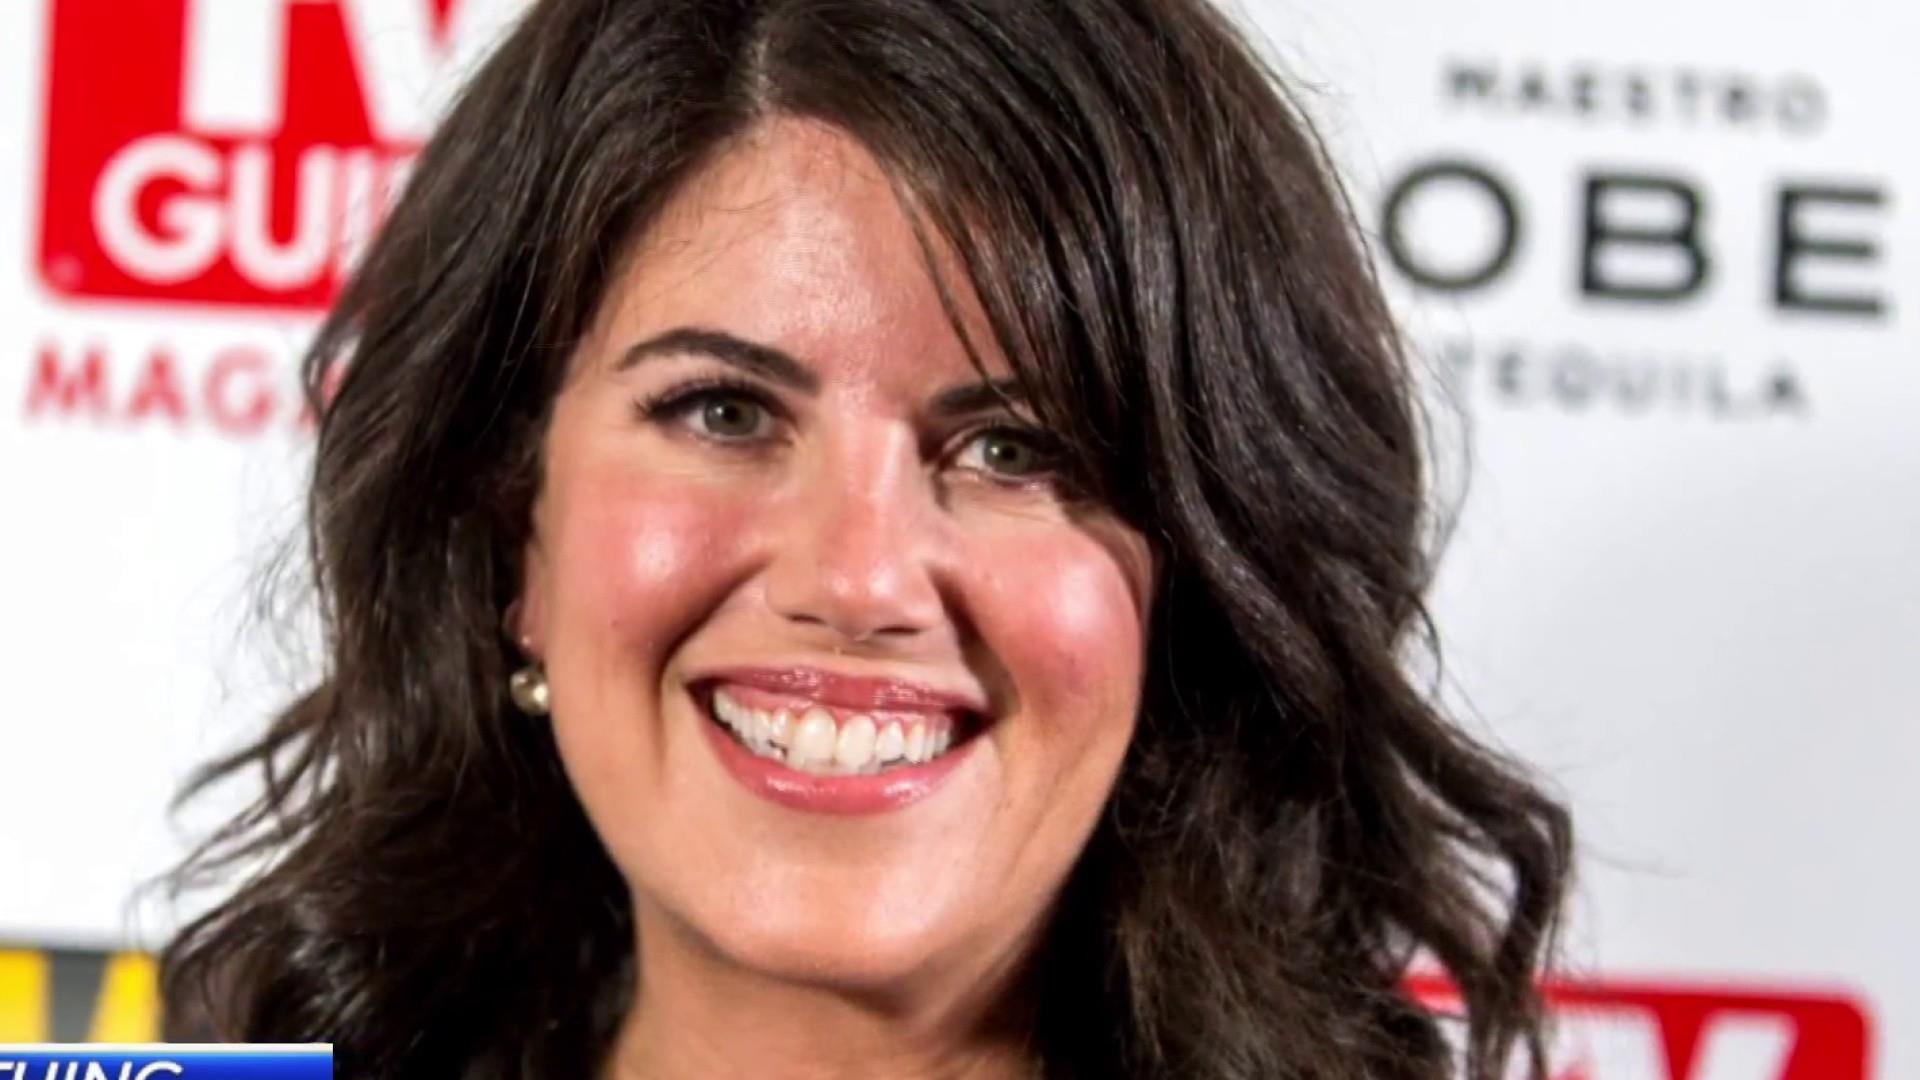 One More Thing: Monica Lewinsky fires back after snub from 'Town & Country' Philanthropist Summit